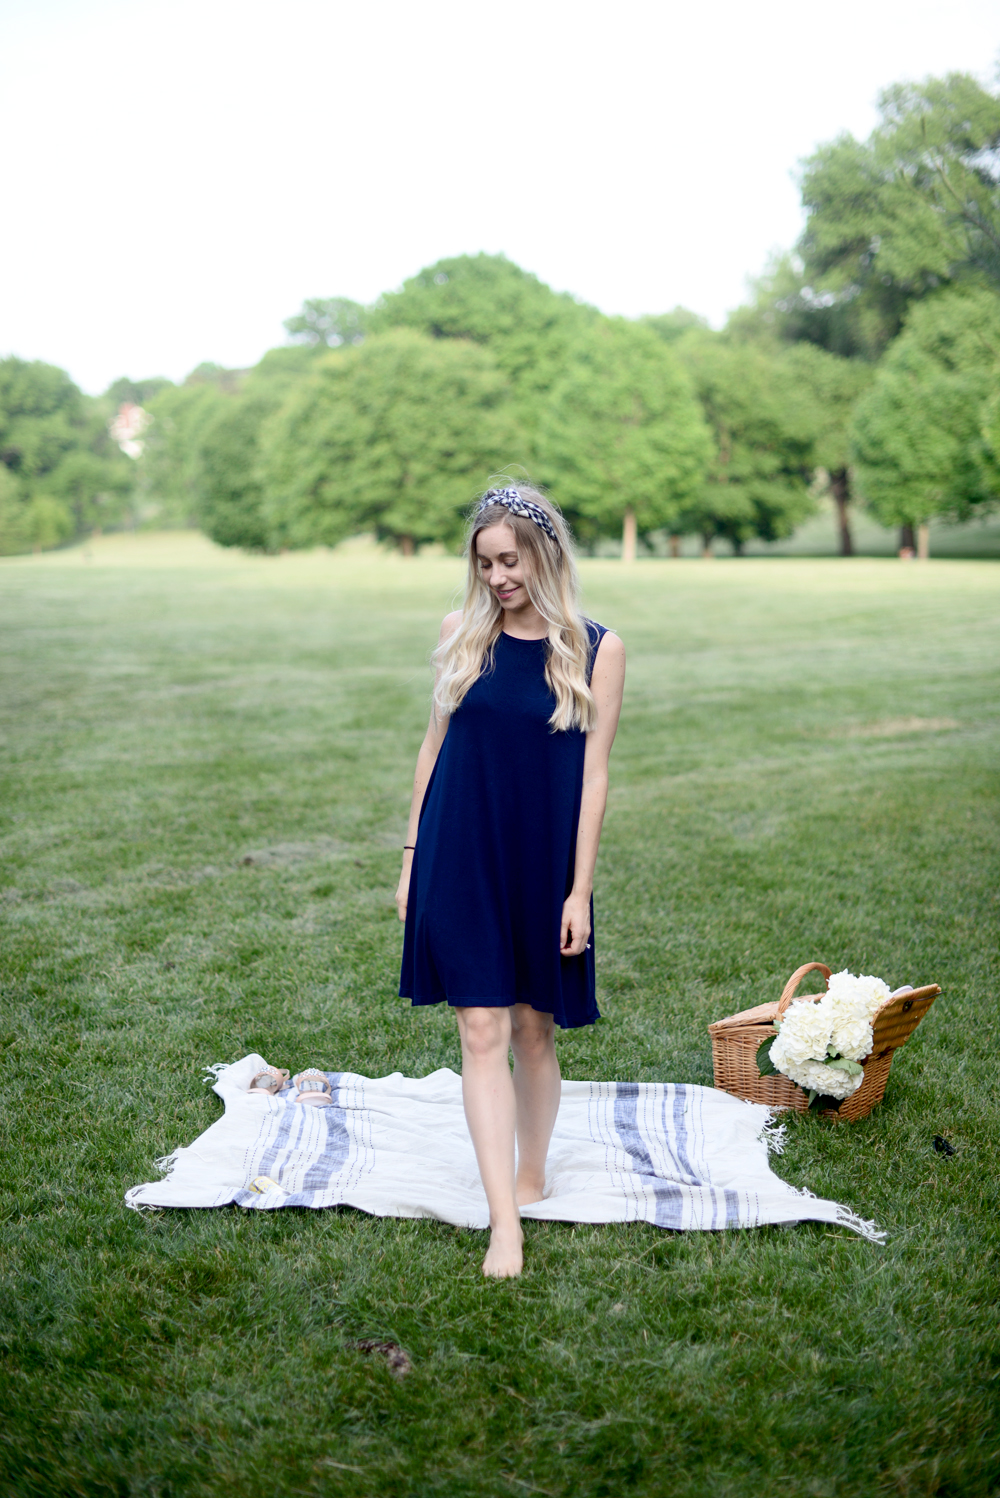 4th-of-july-outfits-1.jpg